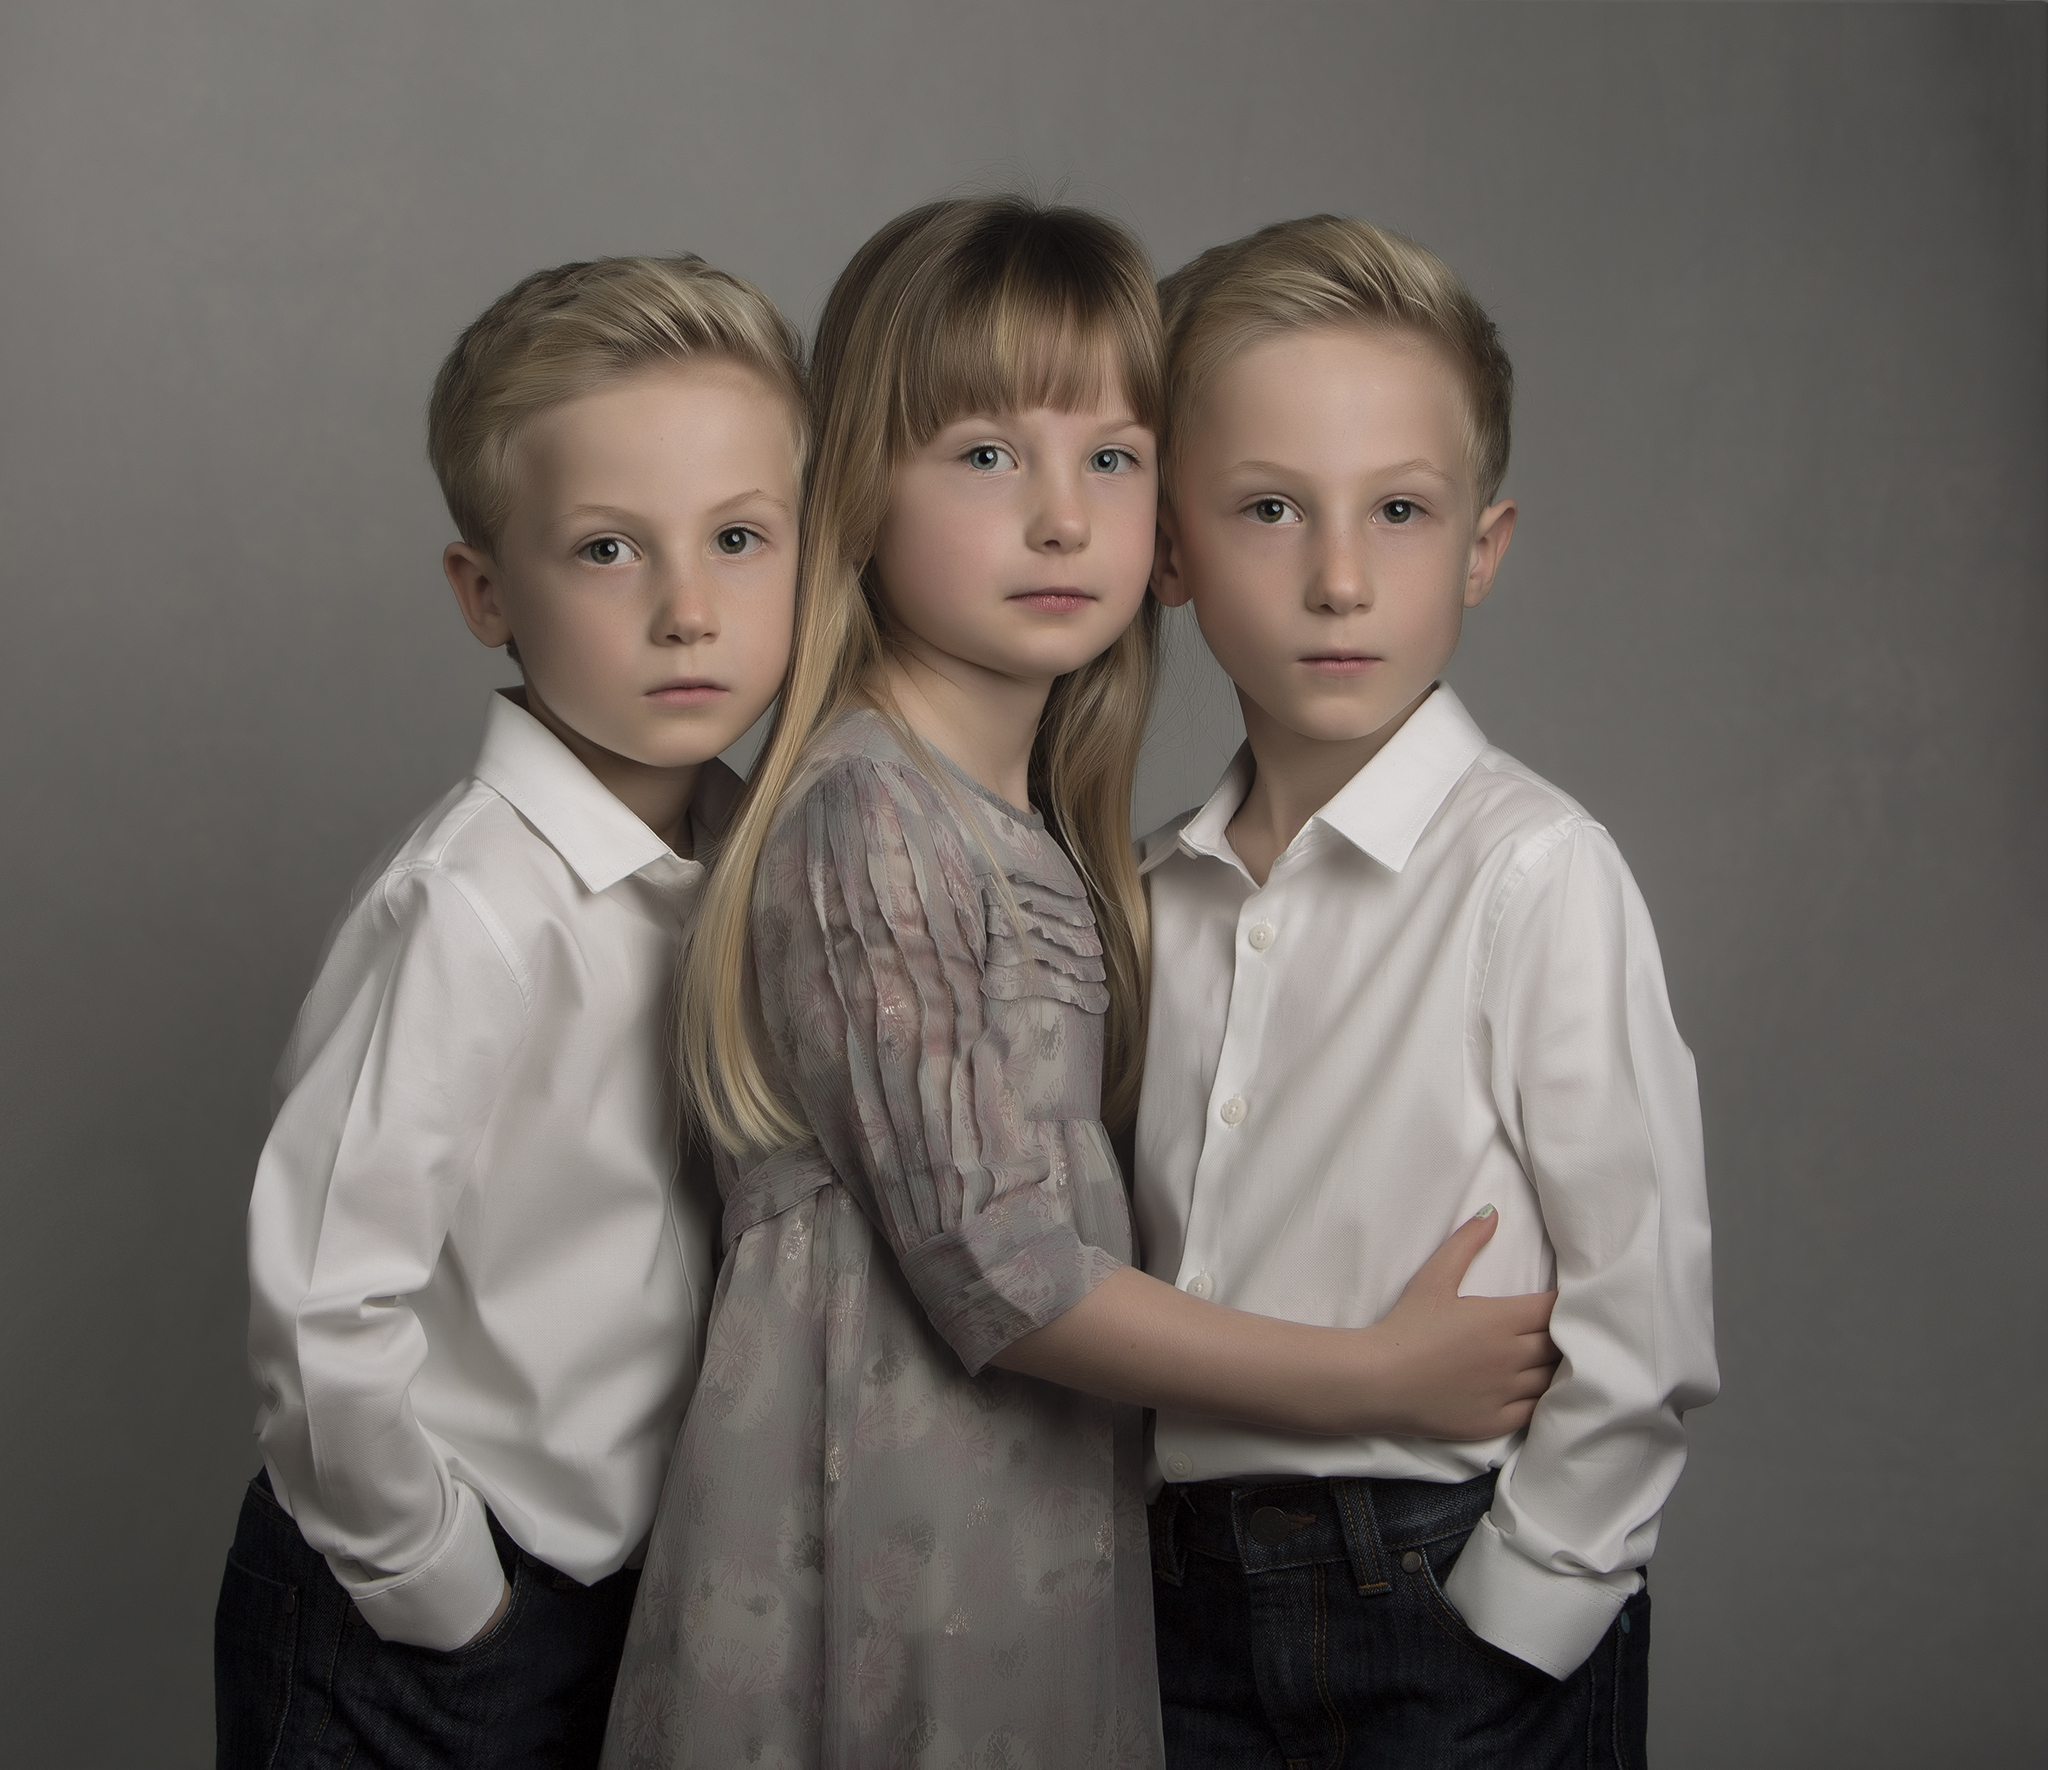 elizabethgphotography_kingslangley_hertfordshire_fineart_childrens_photography_70.jpg